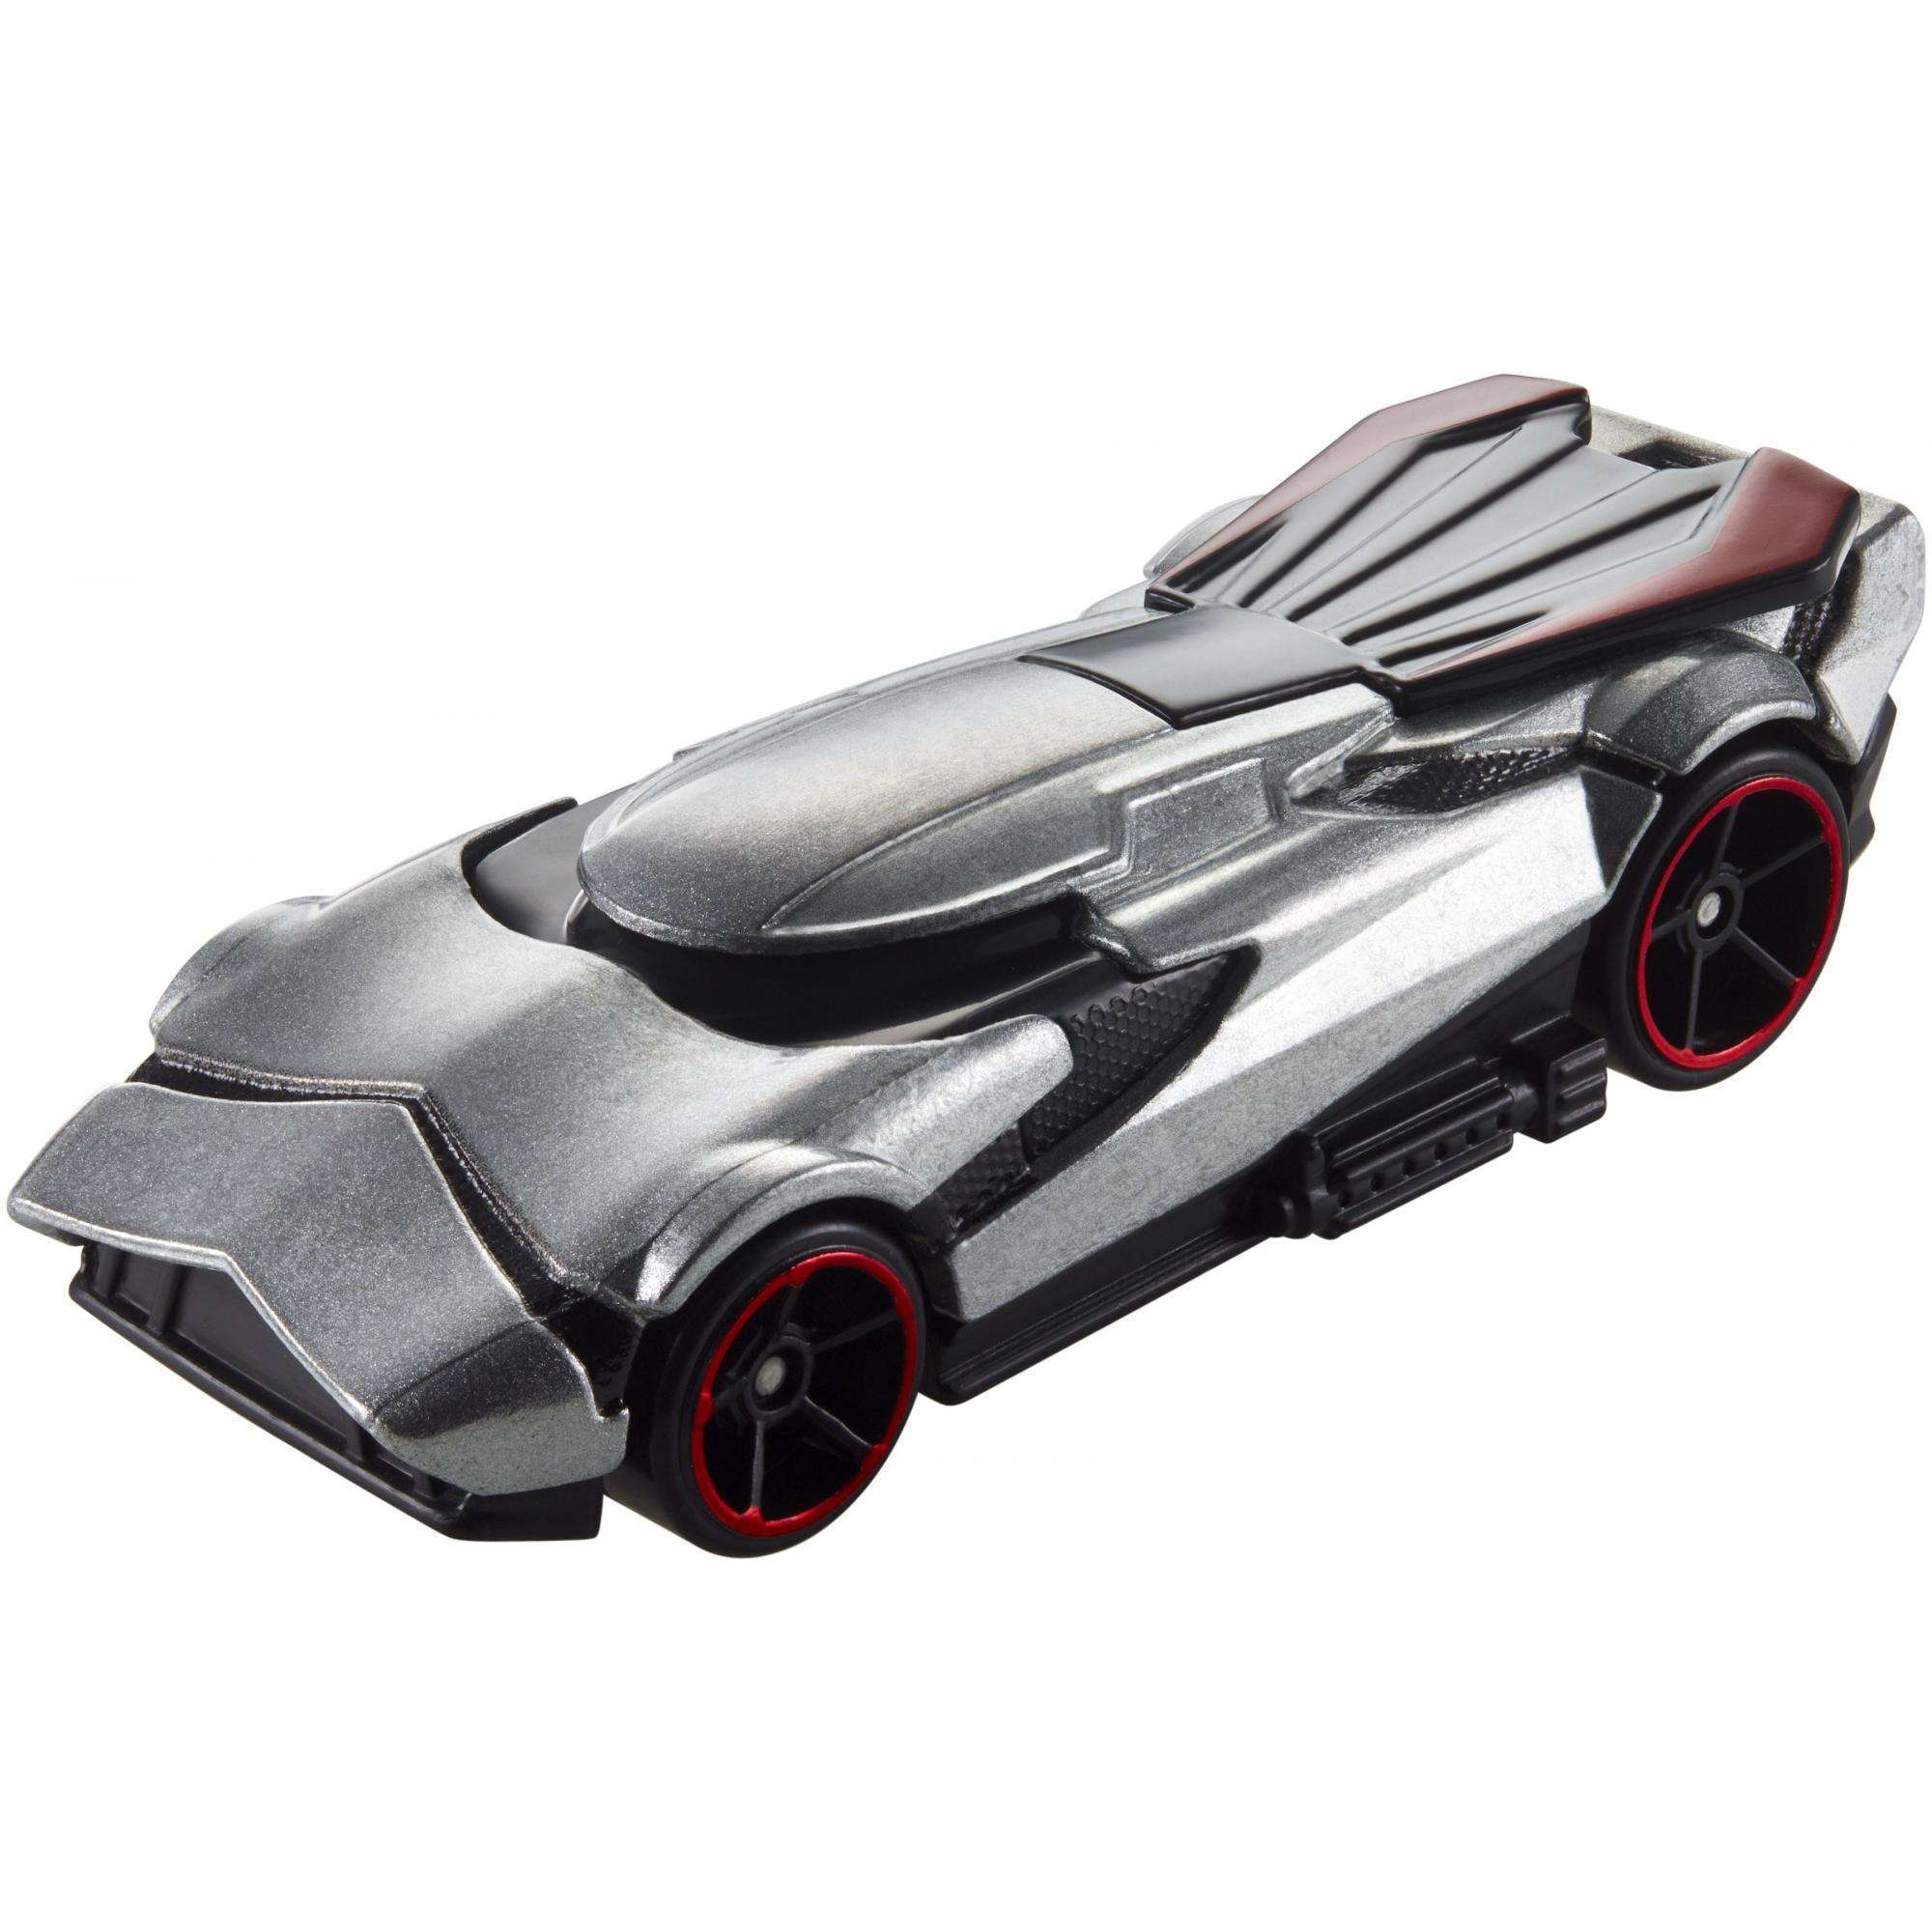 Hot Wheels Star Wars: The Last Jedi Captain Phasma, Character Car